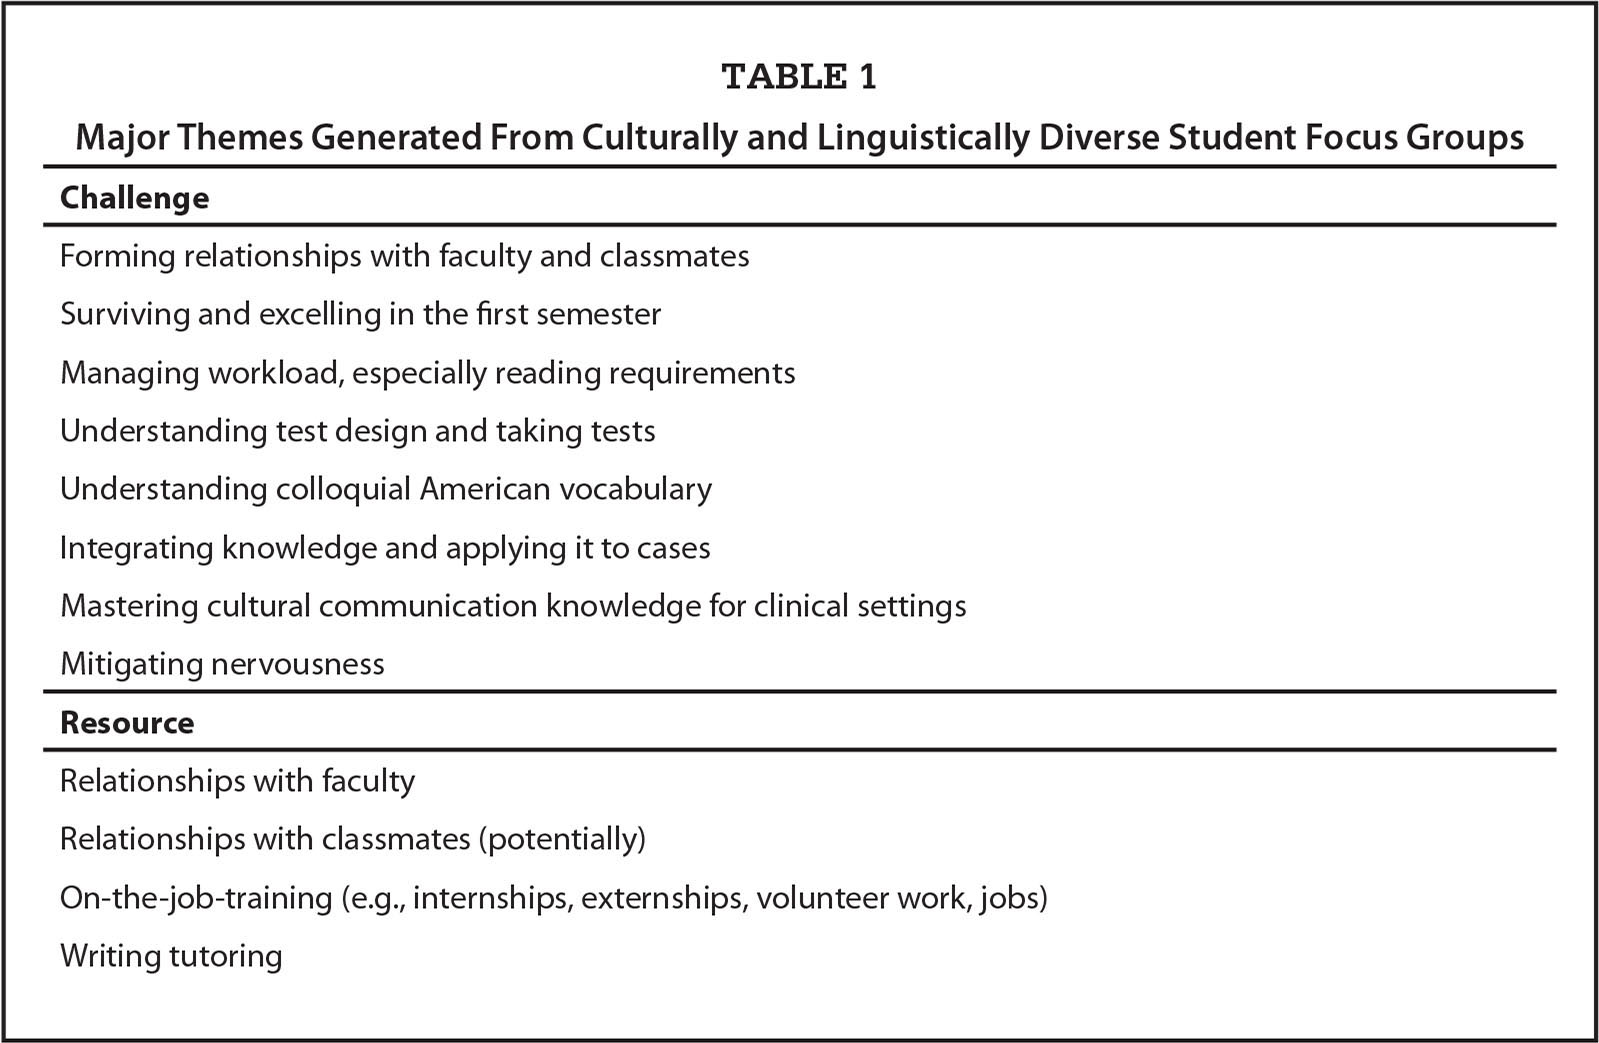 Major Themes Generated From Culturally and Linguistically Diverse Student Focus Groups